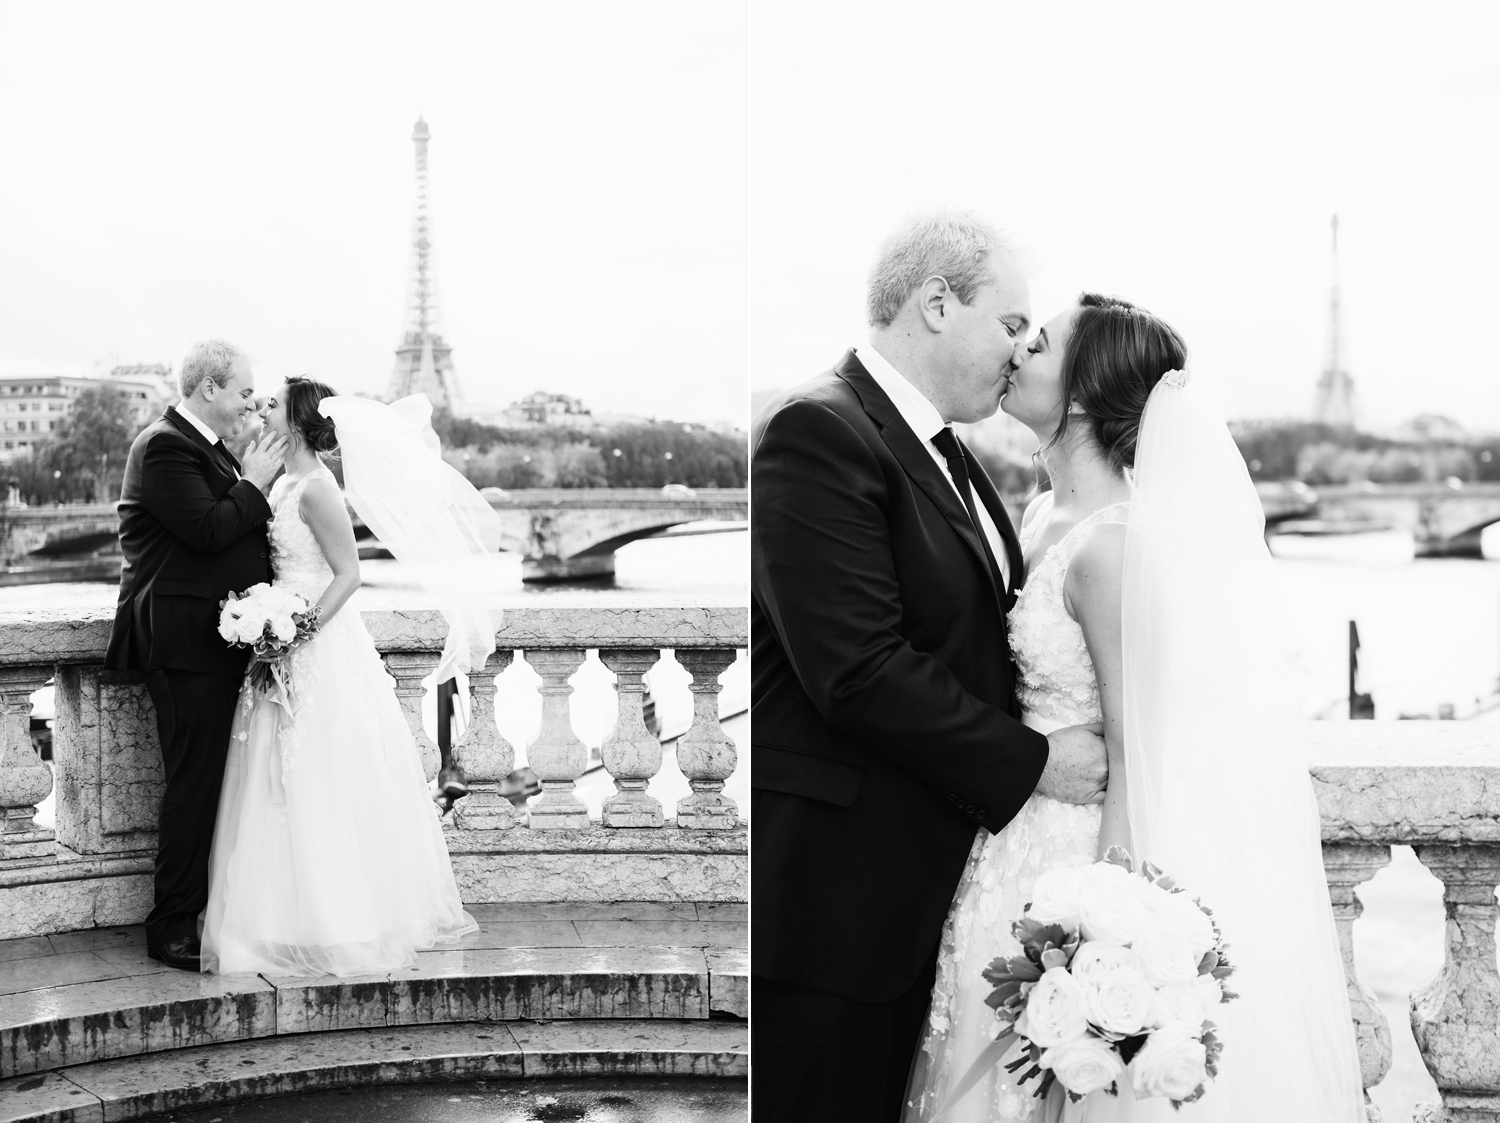 147-katie-mitchell-paris-europe-destination-elopement-wedding-photographer-france.jpg